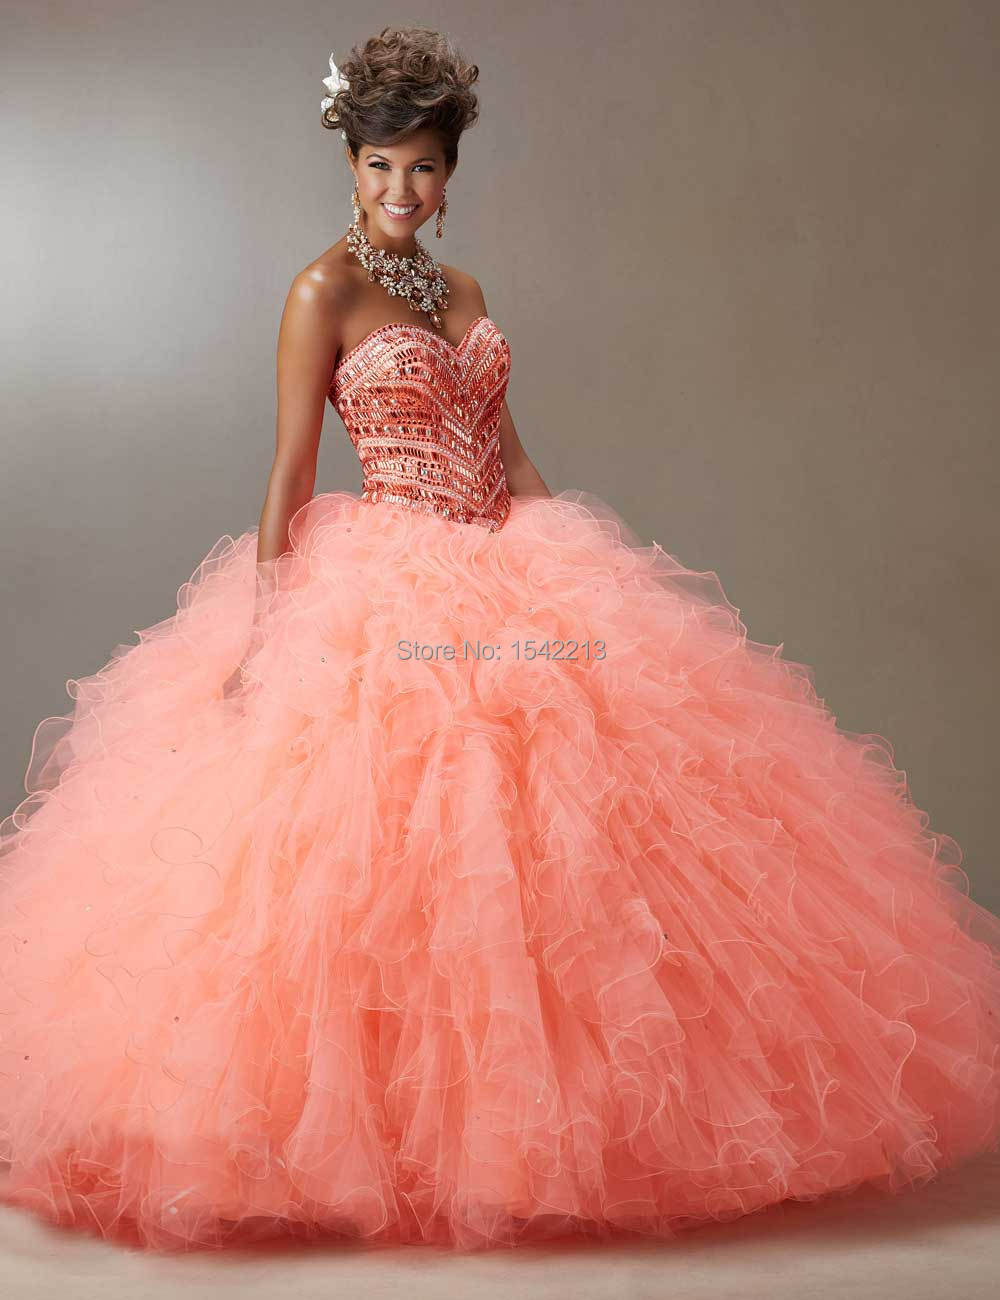 599170cee4 Quinceanera Dresses Coral - Data Dynamic AG